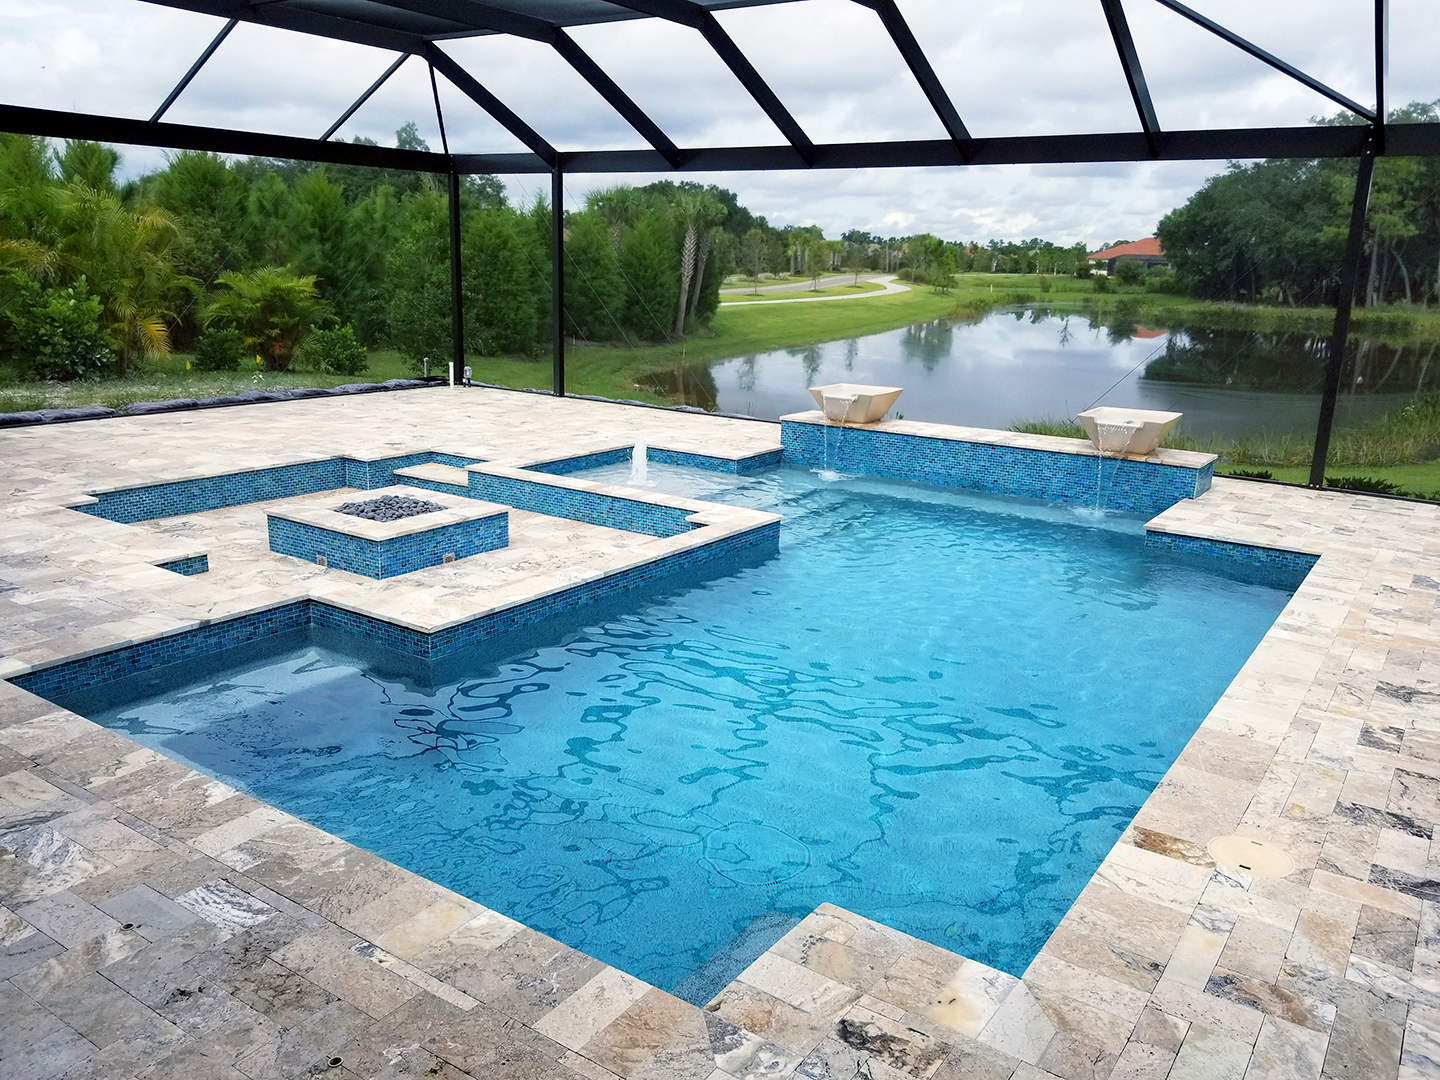 Concrete Residential Geometric Design Award Winner Pool Builder in Venice, FL.